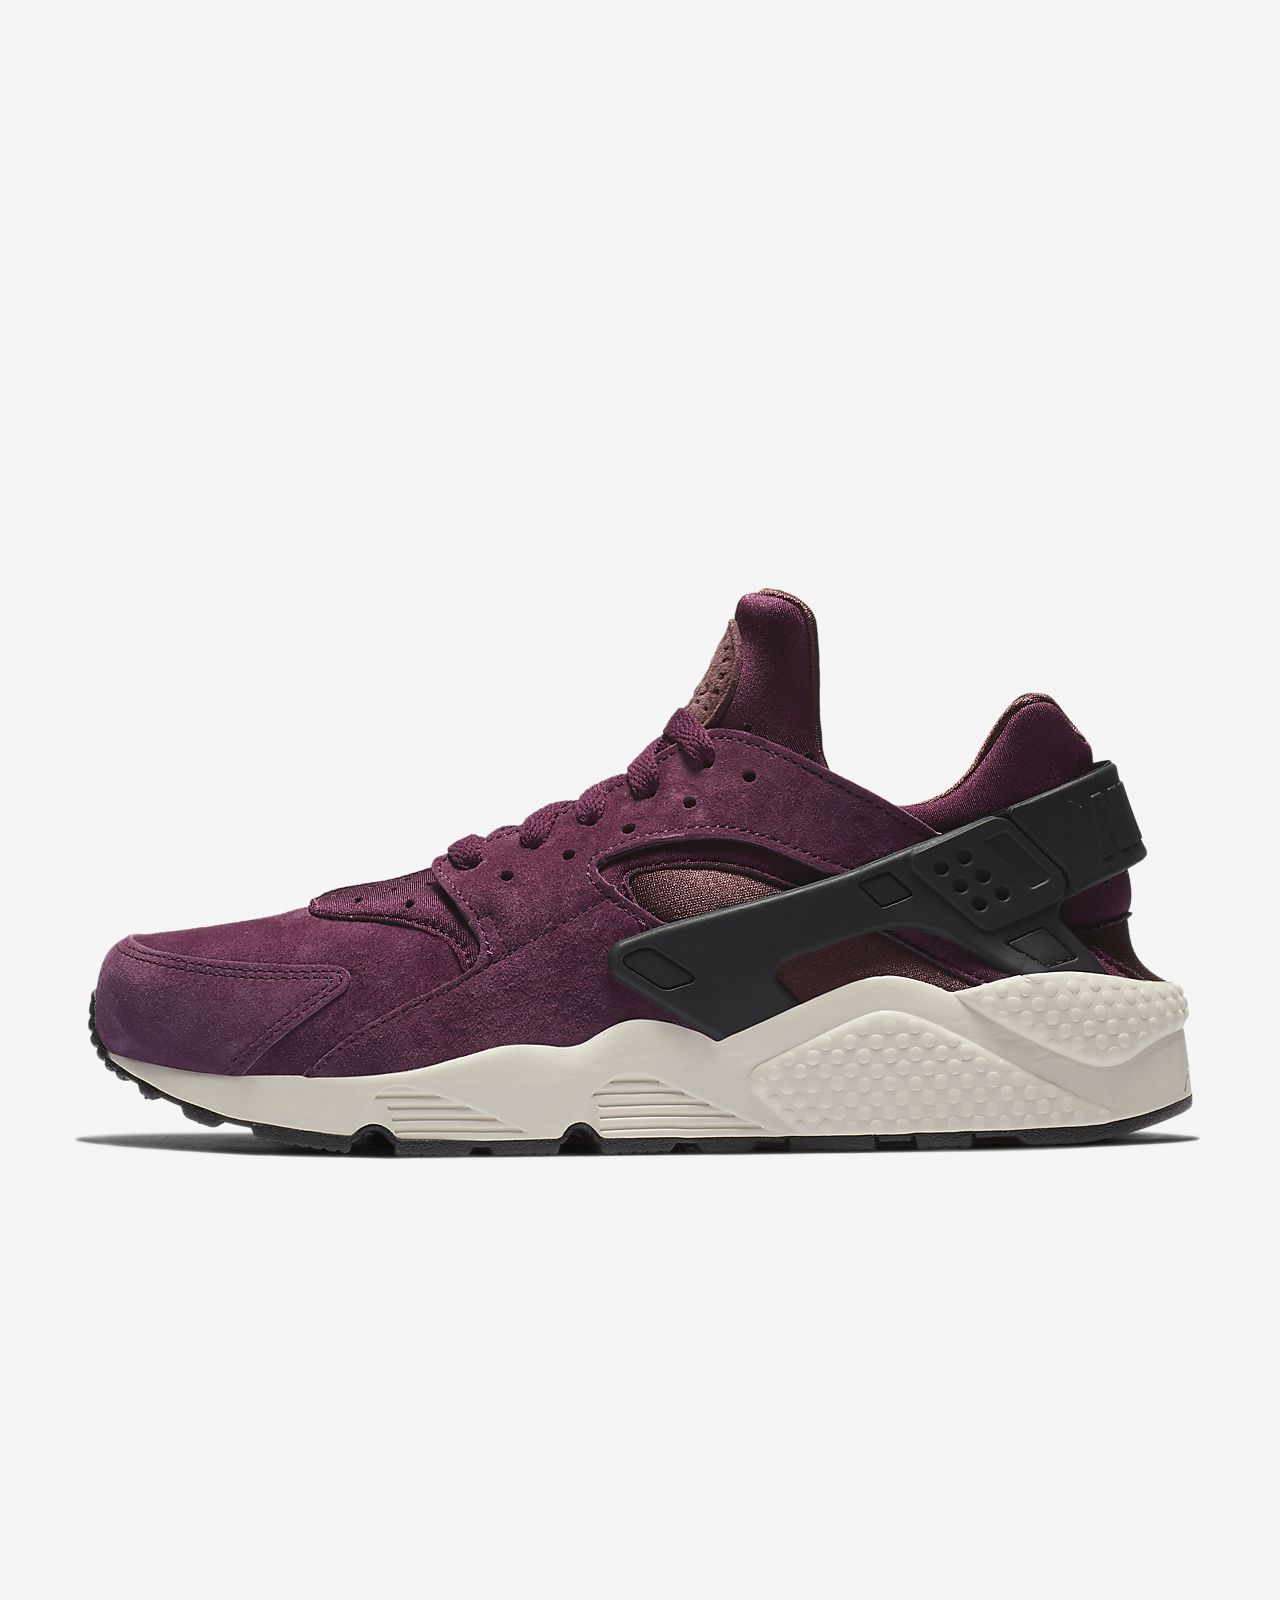 fb5c2444c9124 Nike Air Huarache Premium Men s Shoe. Nike.com